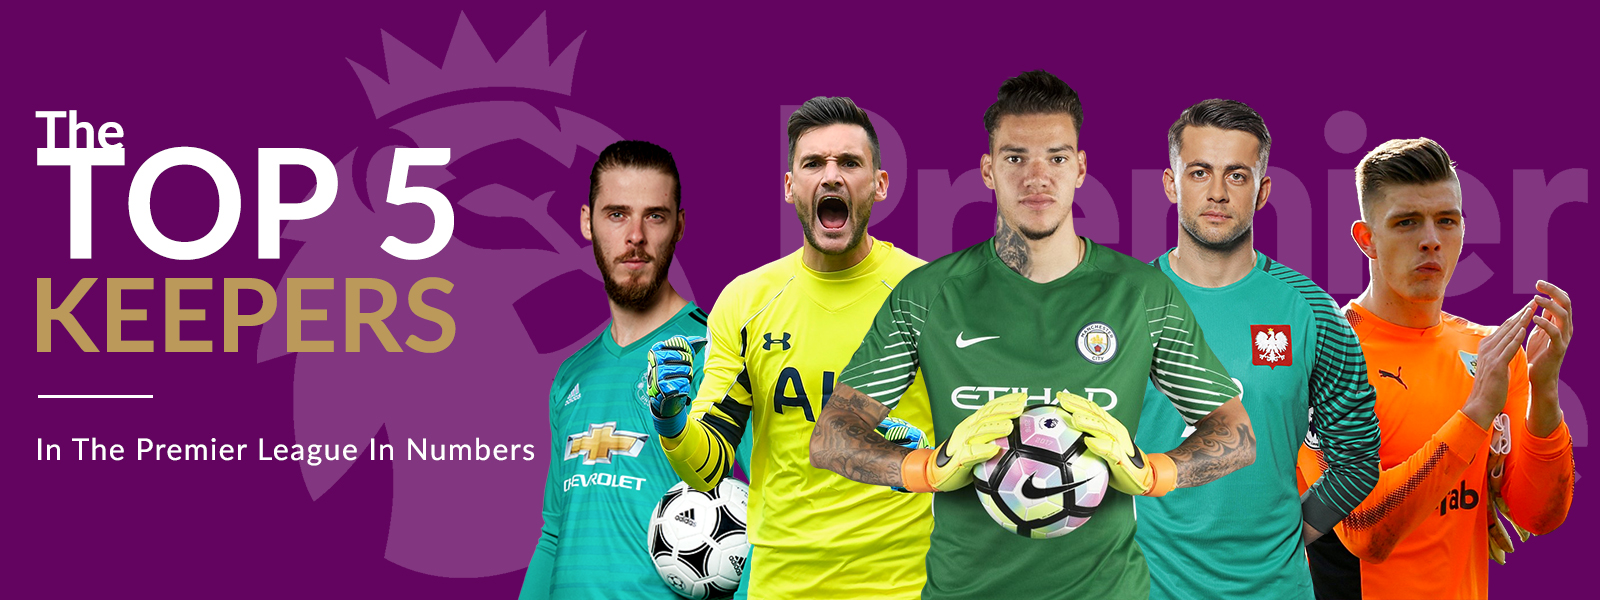 The Top Five Keepers In The Premier League In Numbers